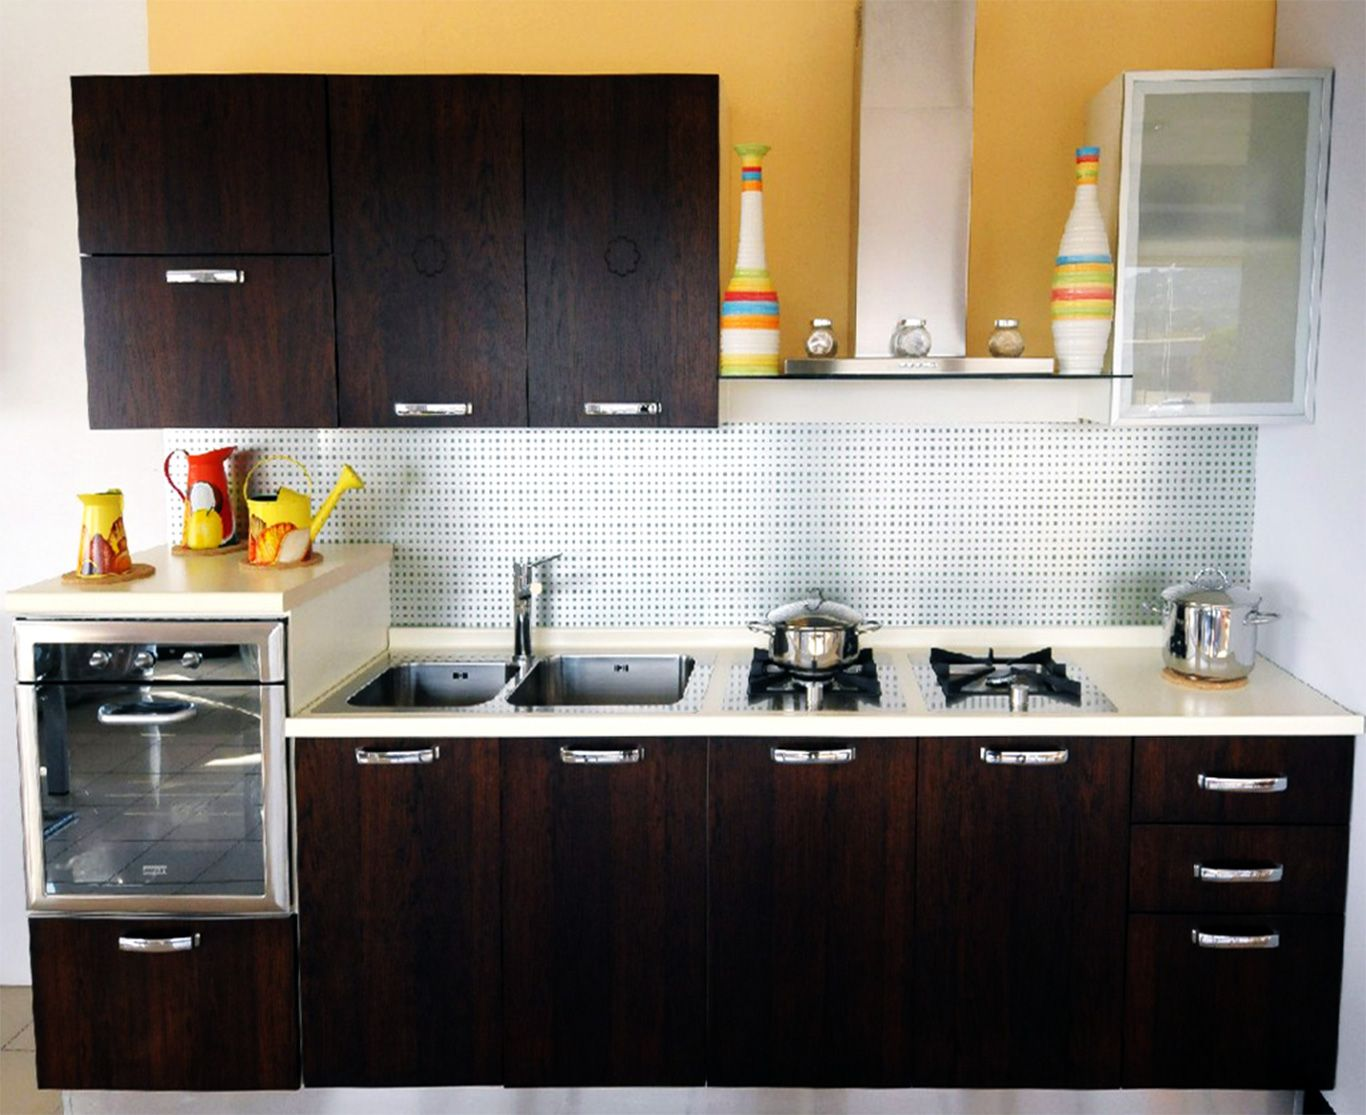 Pune kitchens is the modular kitchen shutters supplier for Simple kitchen design images